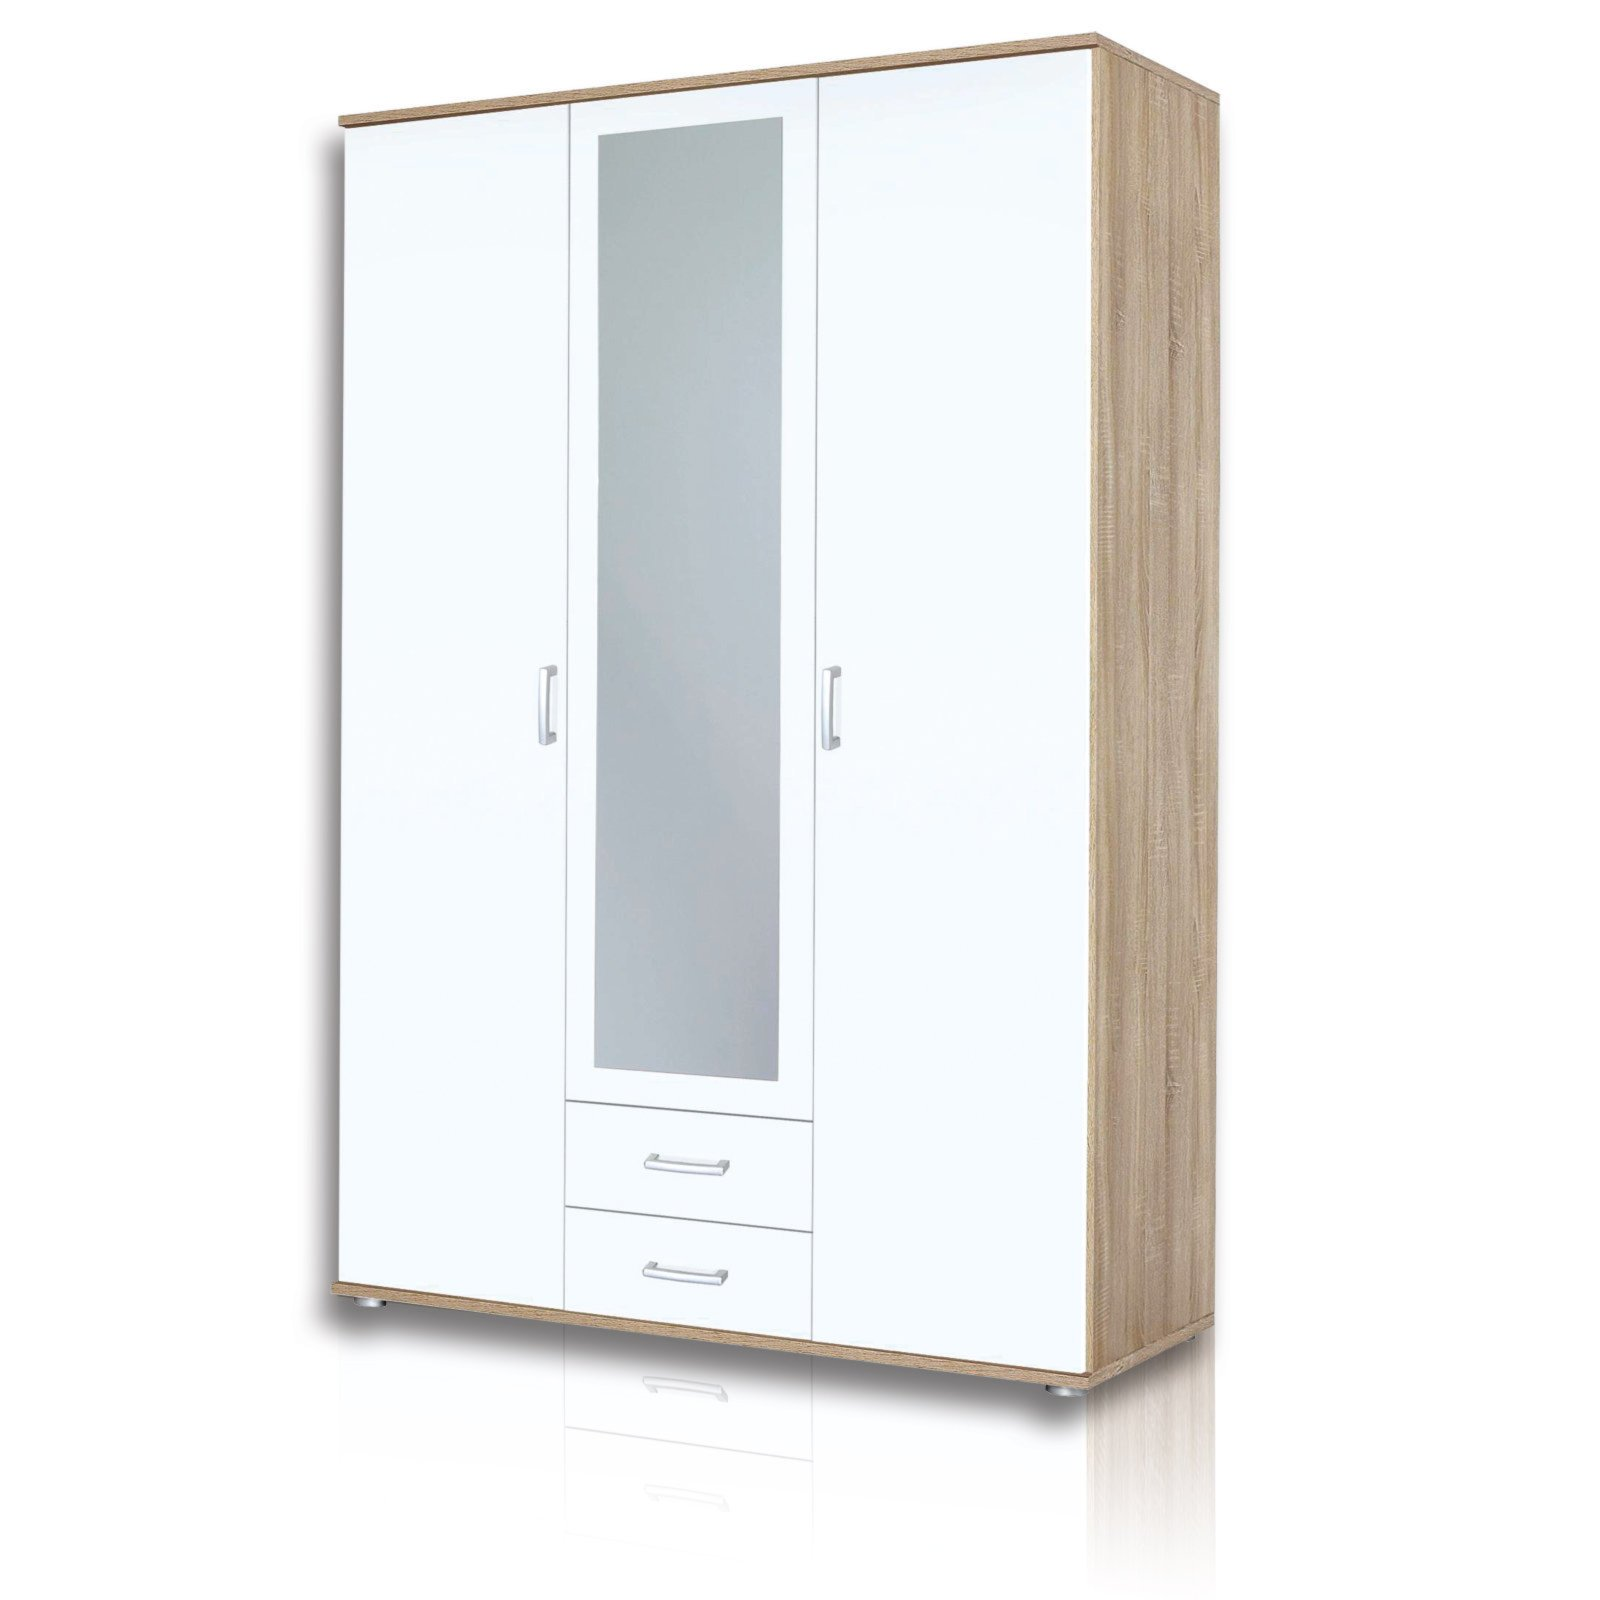 schrank 70 cm breit best voice arctic kommode cm breit. Black Bedroom Furniture Sets. Home Design Ideas